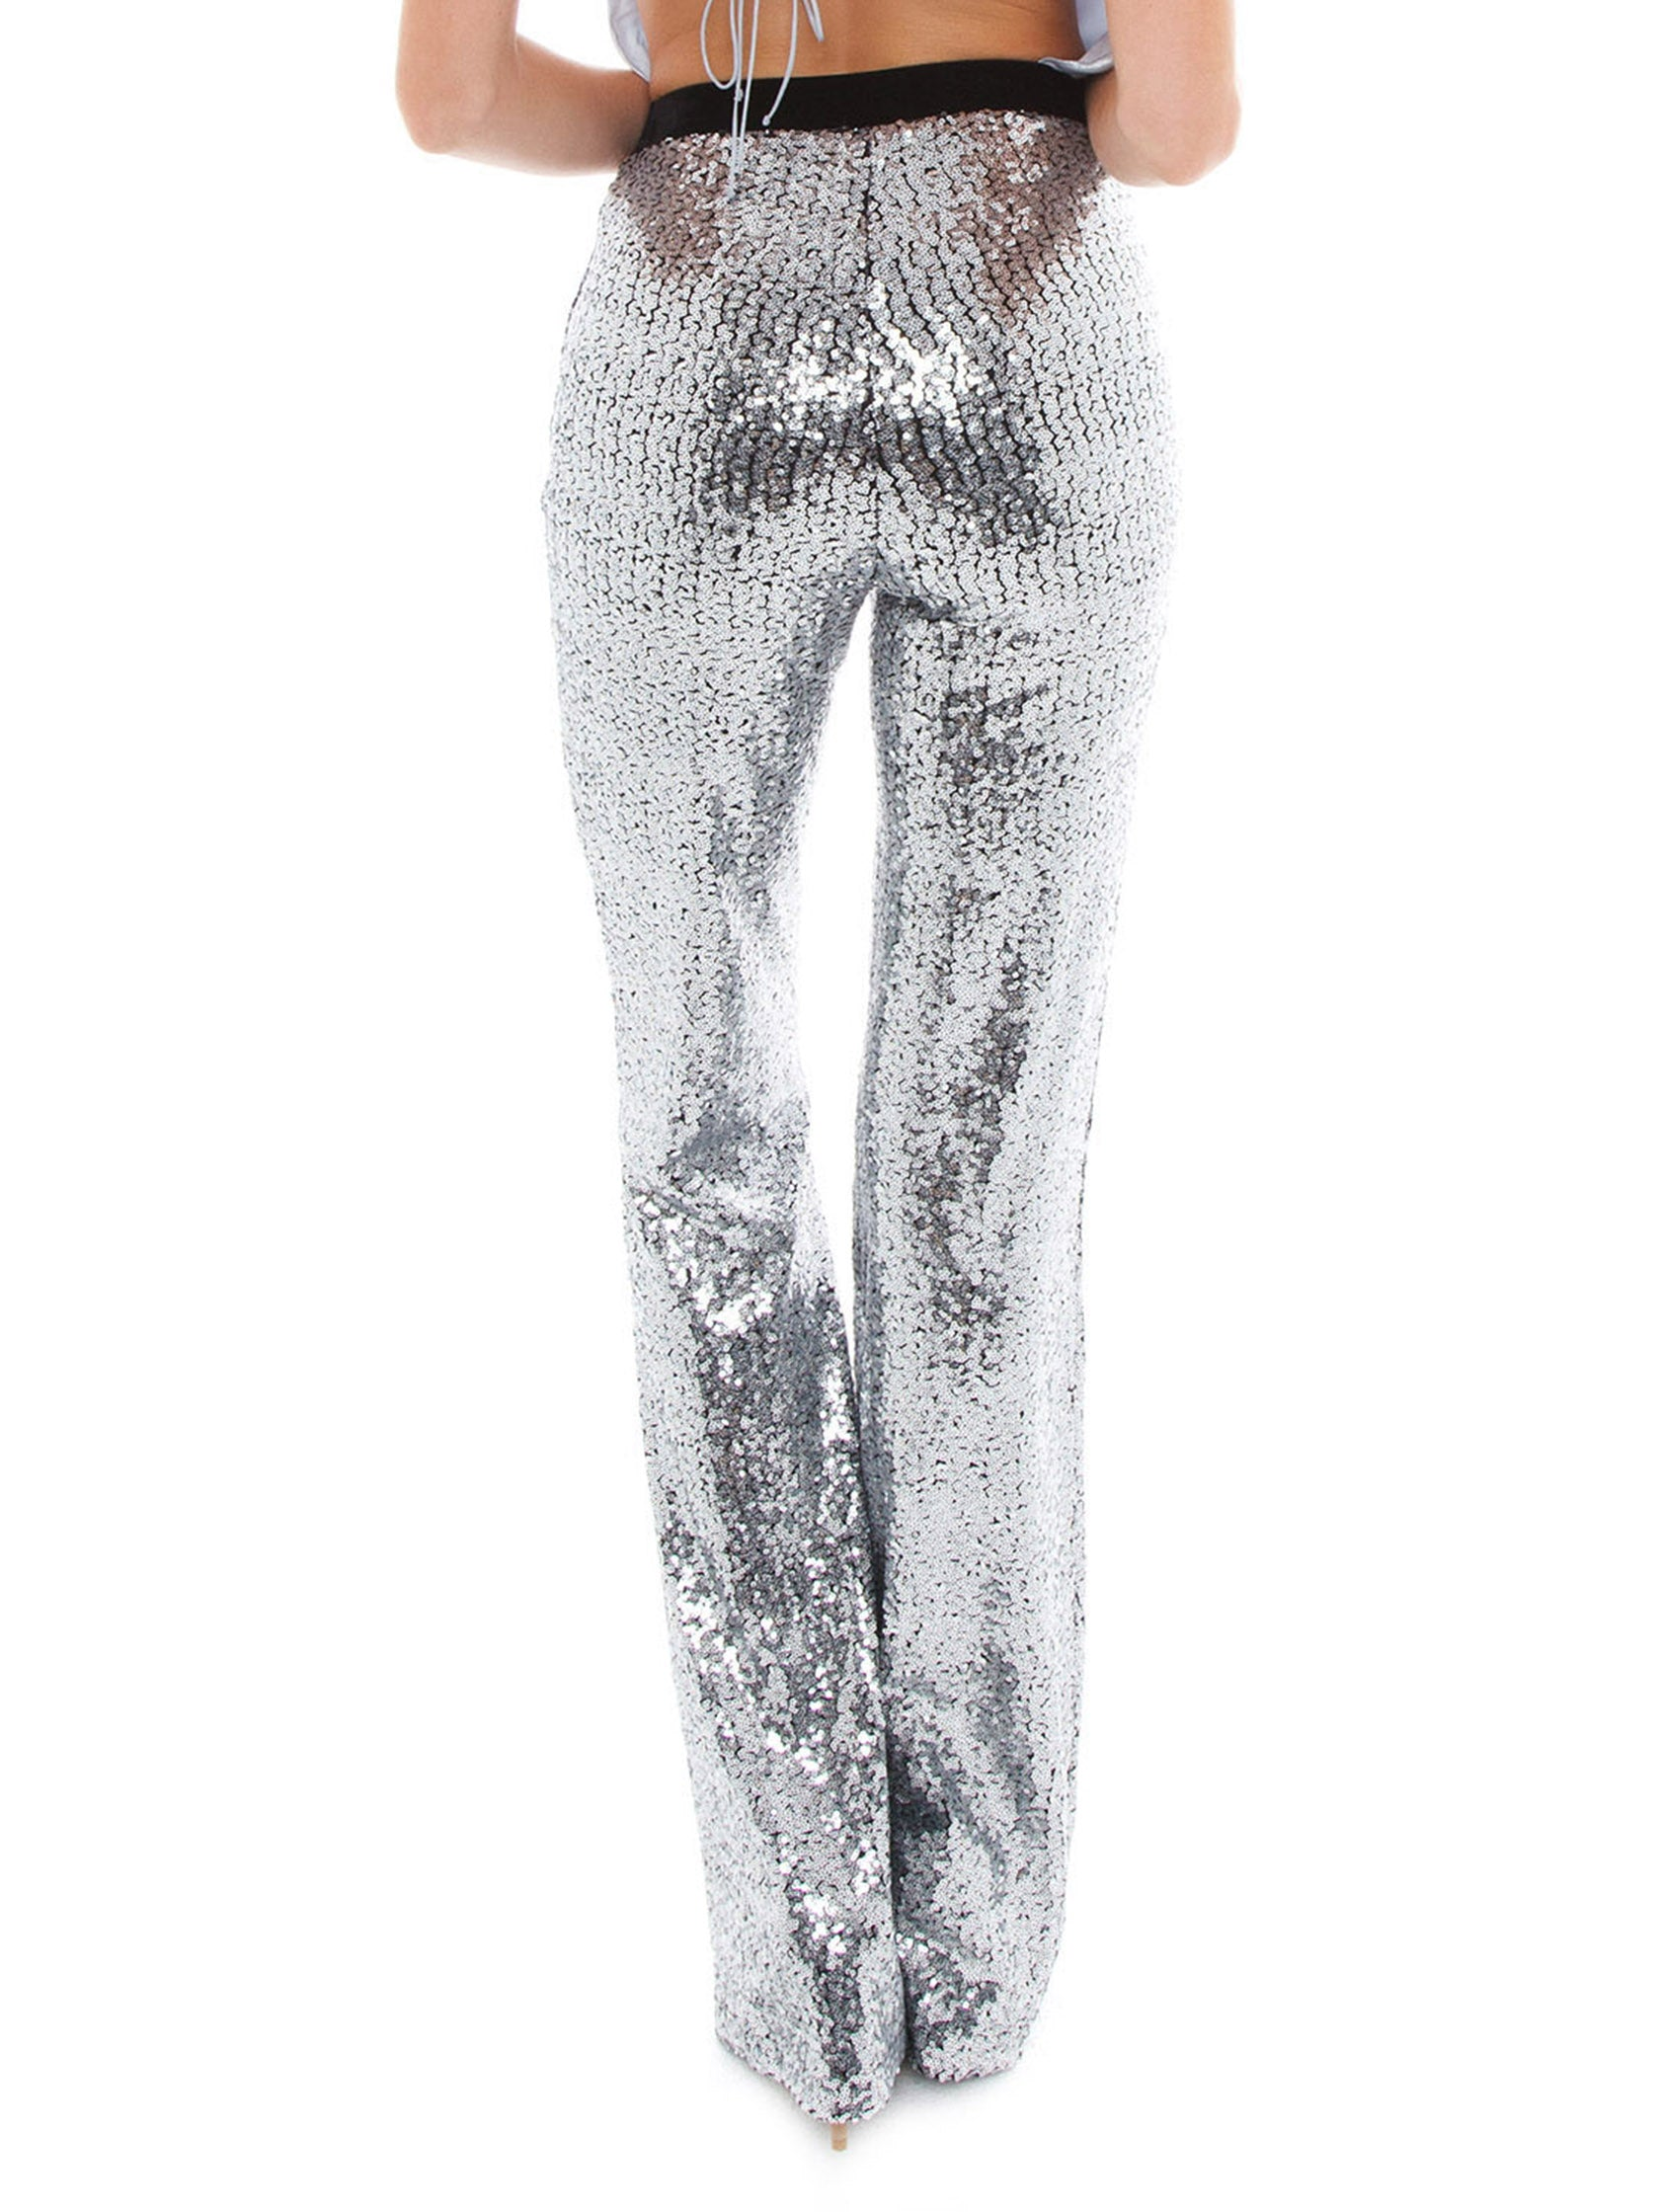 Women outfit in a pants rental from BB Dakota called Saturday Night Fever Sequin Flared Pant